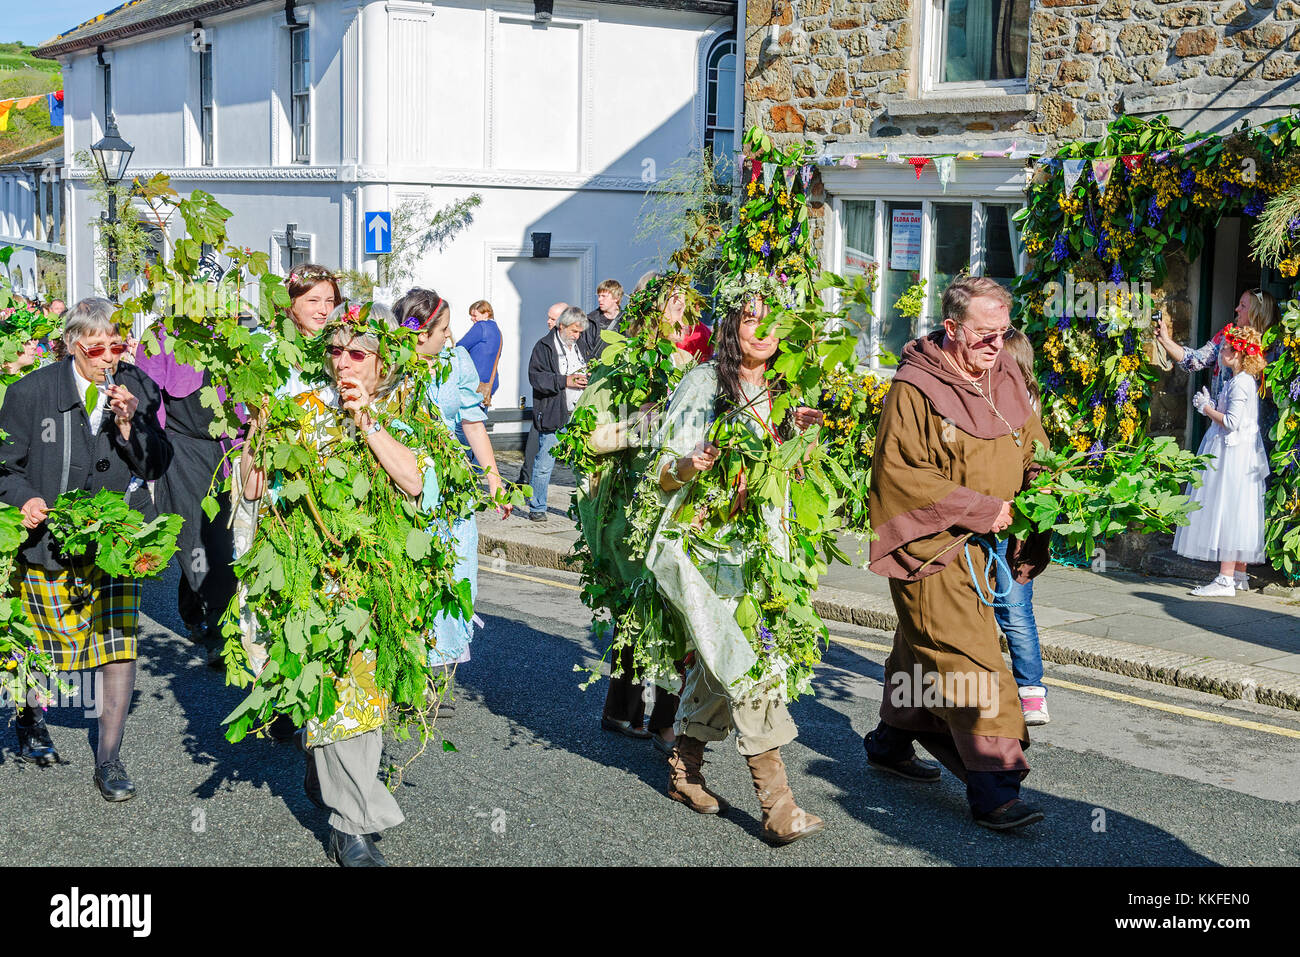 participants in the hal-an-tow pageant on flora day in helston, cornwall, england, uk. - Stock Image